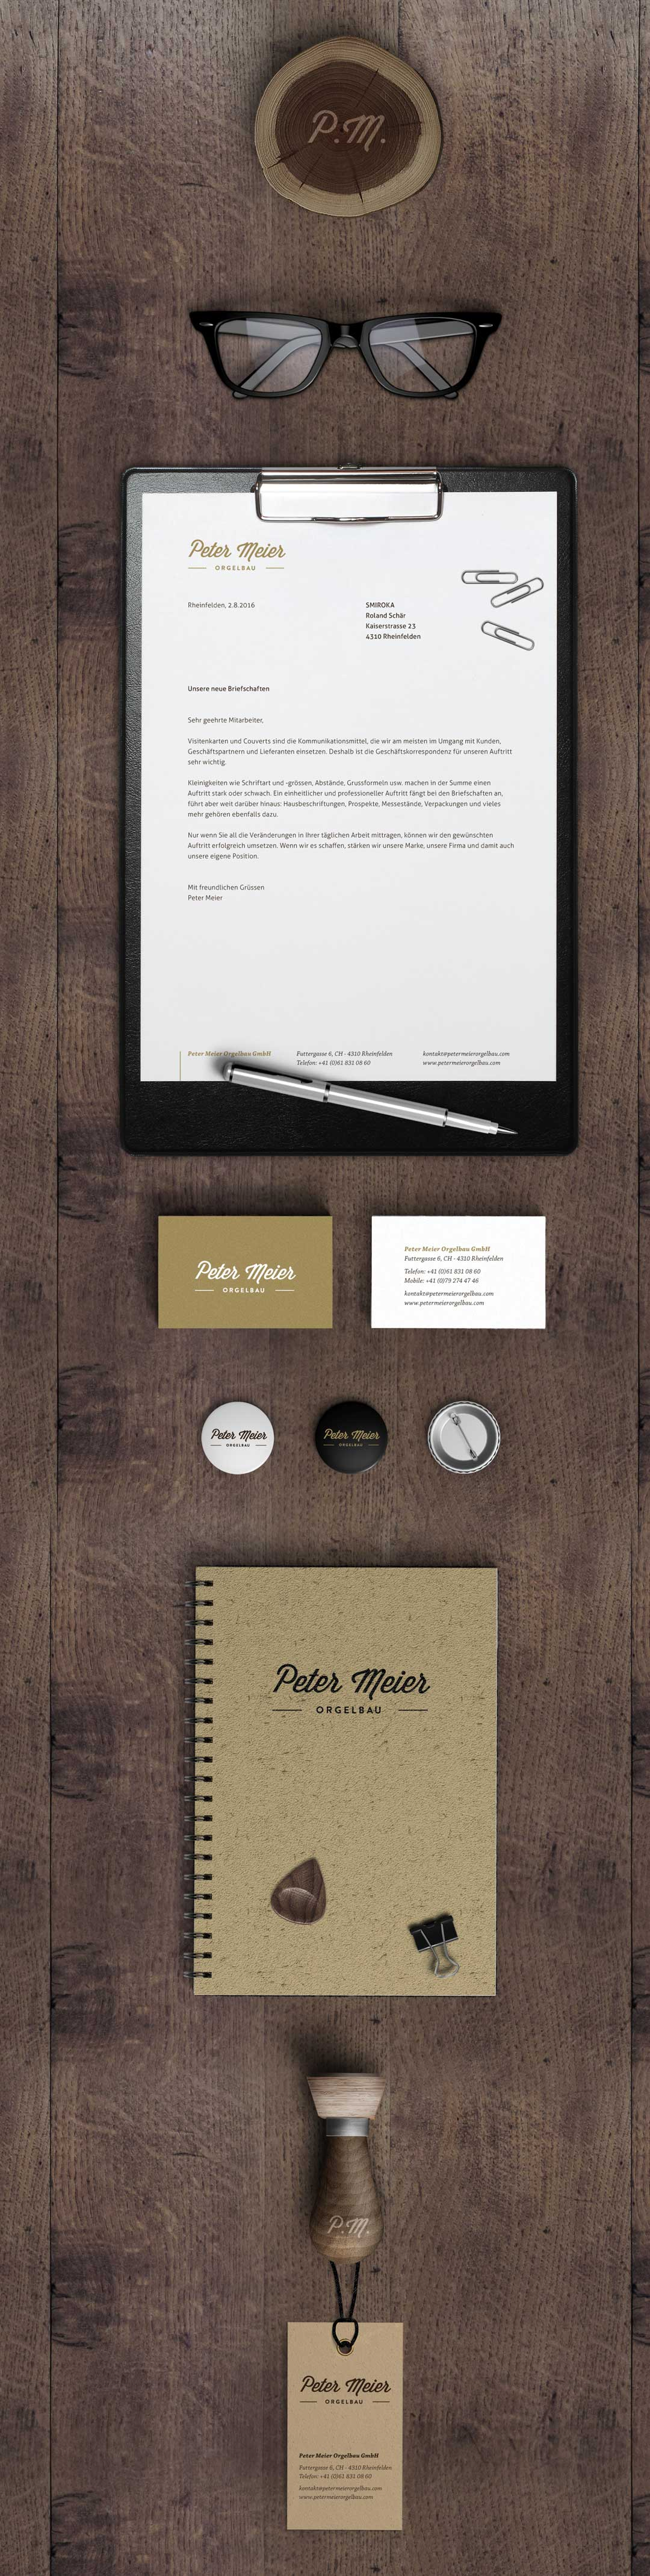 Peter Meier Orgelbau Corporate Design